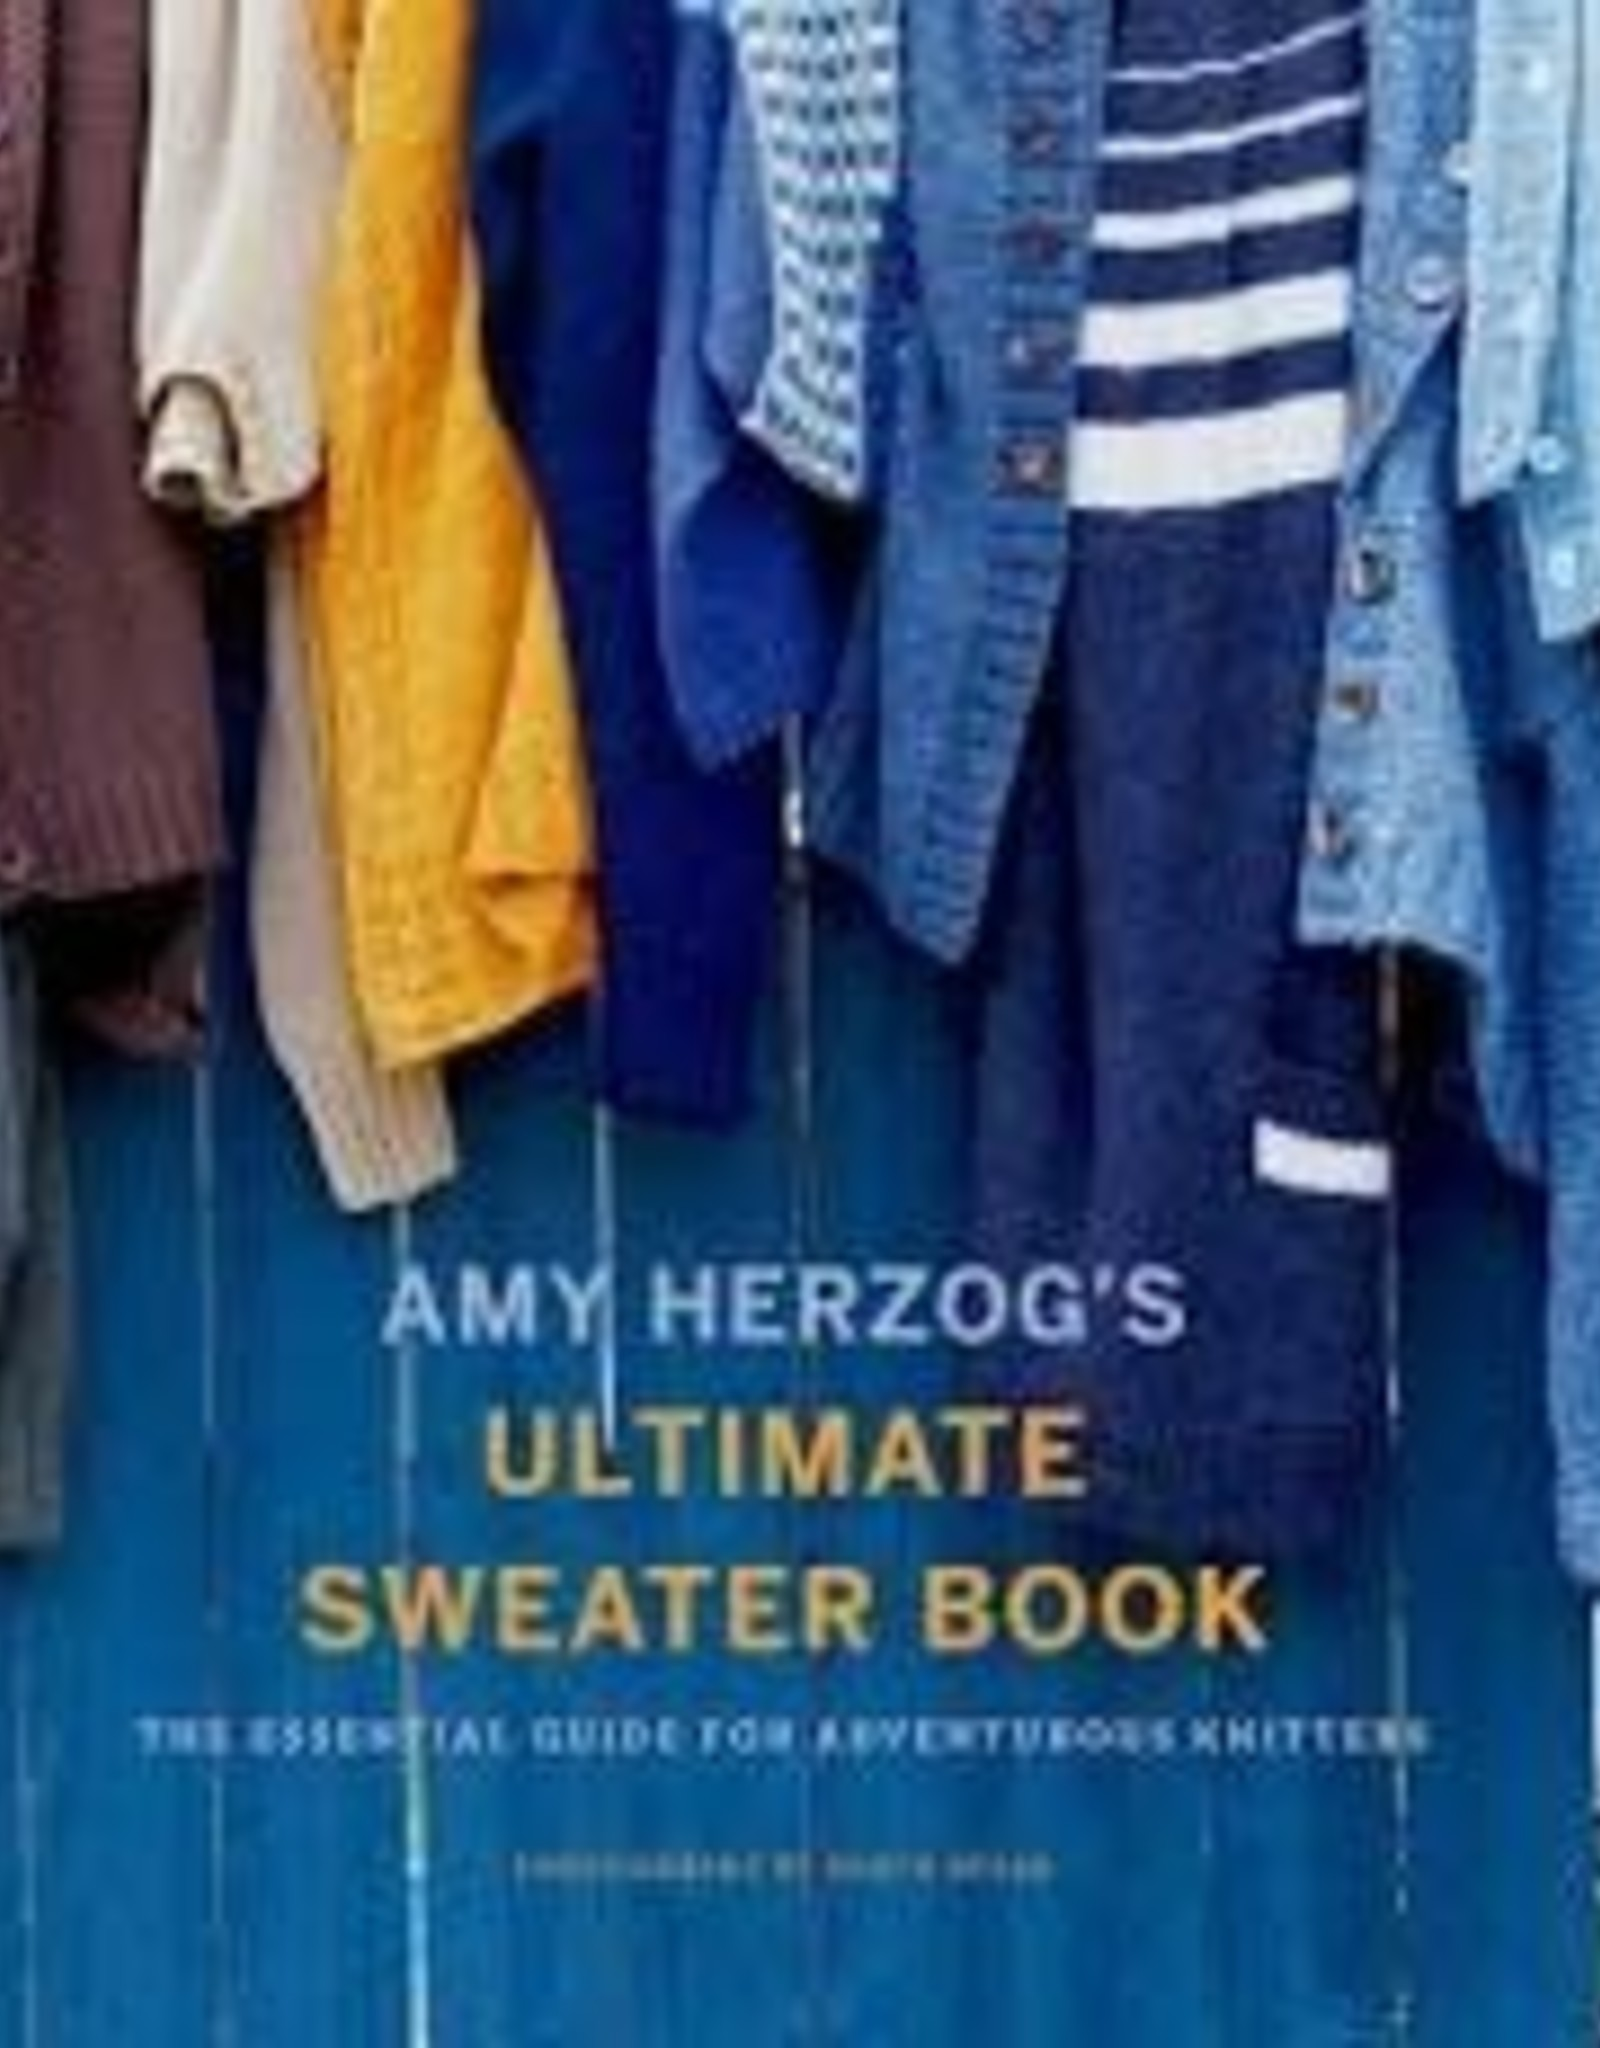 Book - Ultimate Sweater Book by Herzog